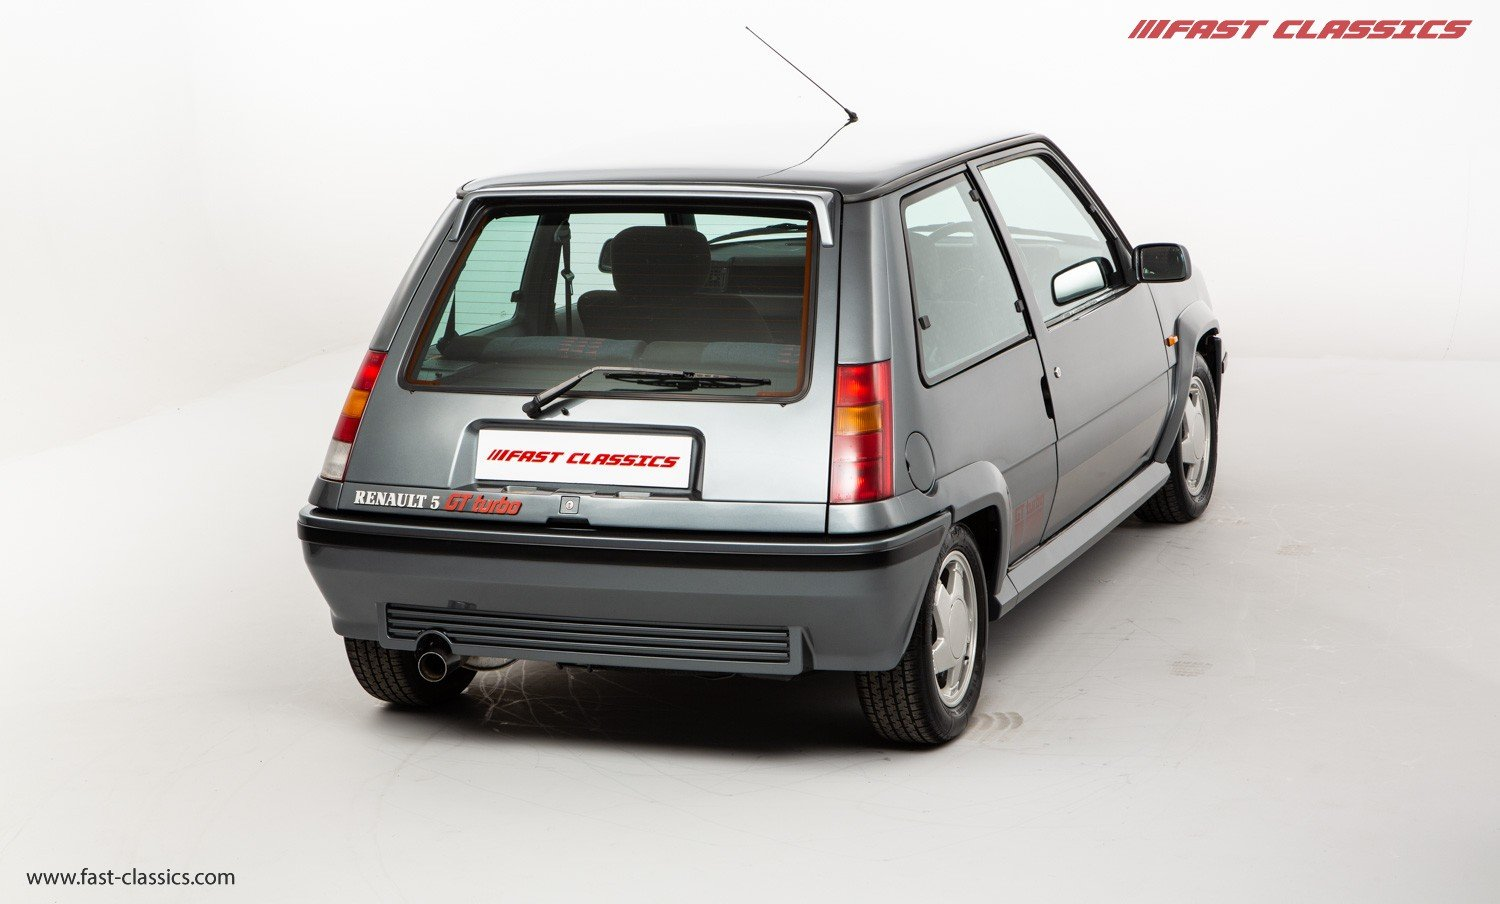 1991 RENAULT R5 GT TURBO // UK RHD // 50K MILES // LATE PRODUCTIO For Sale (picture 7 of 21)